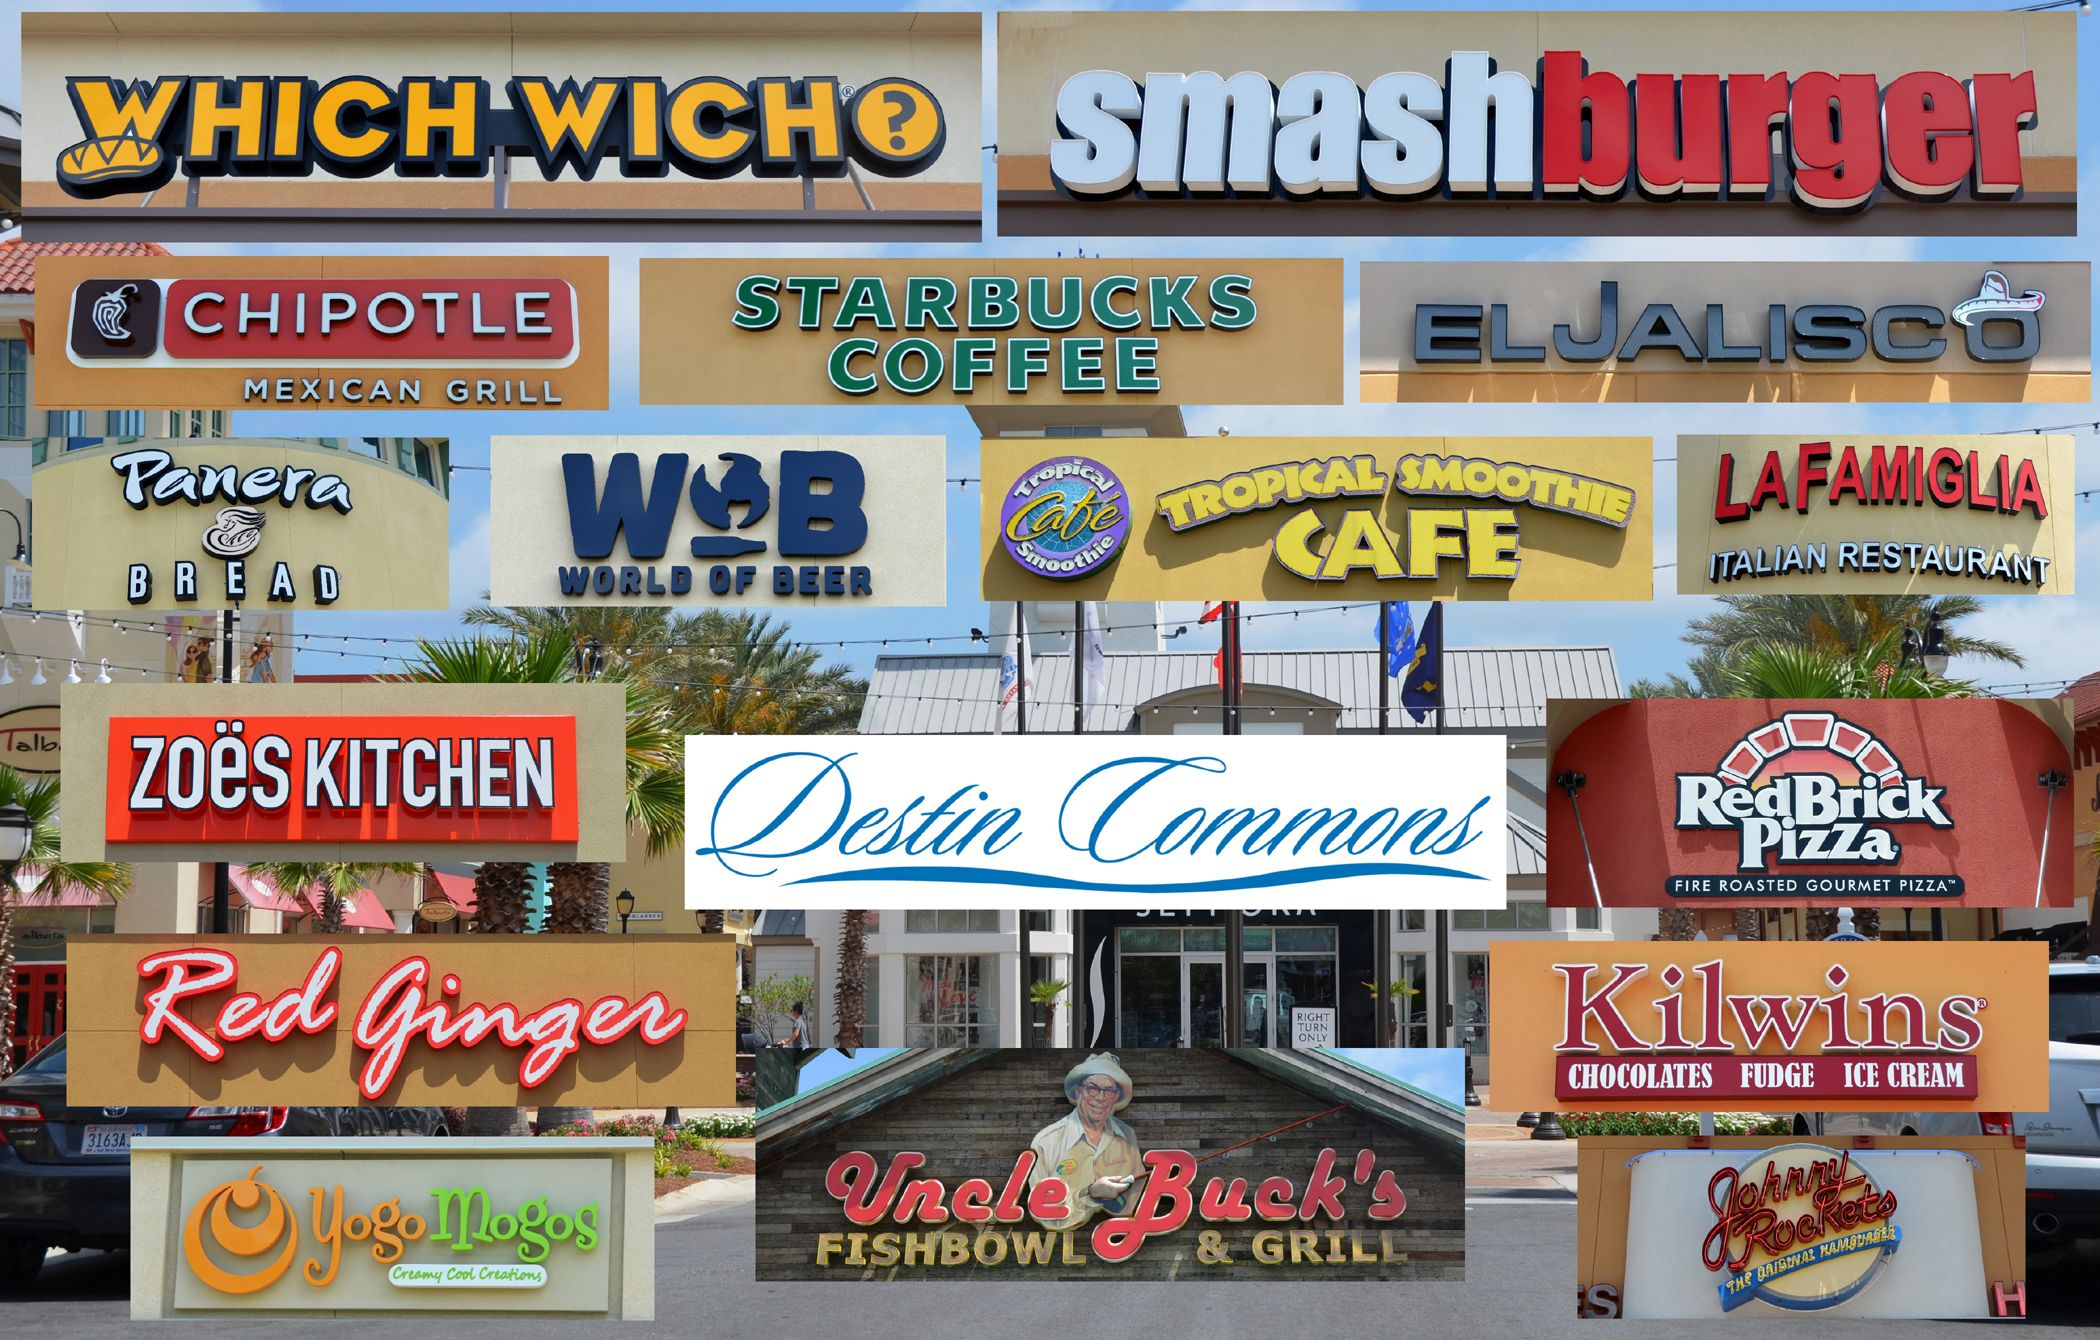 Destin Commons Restaurants